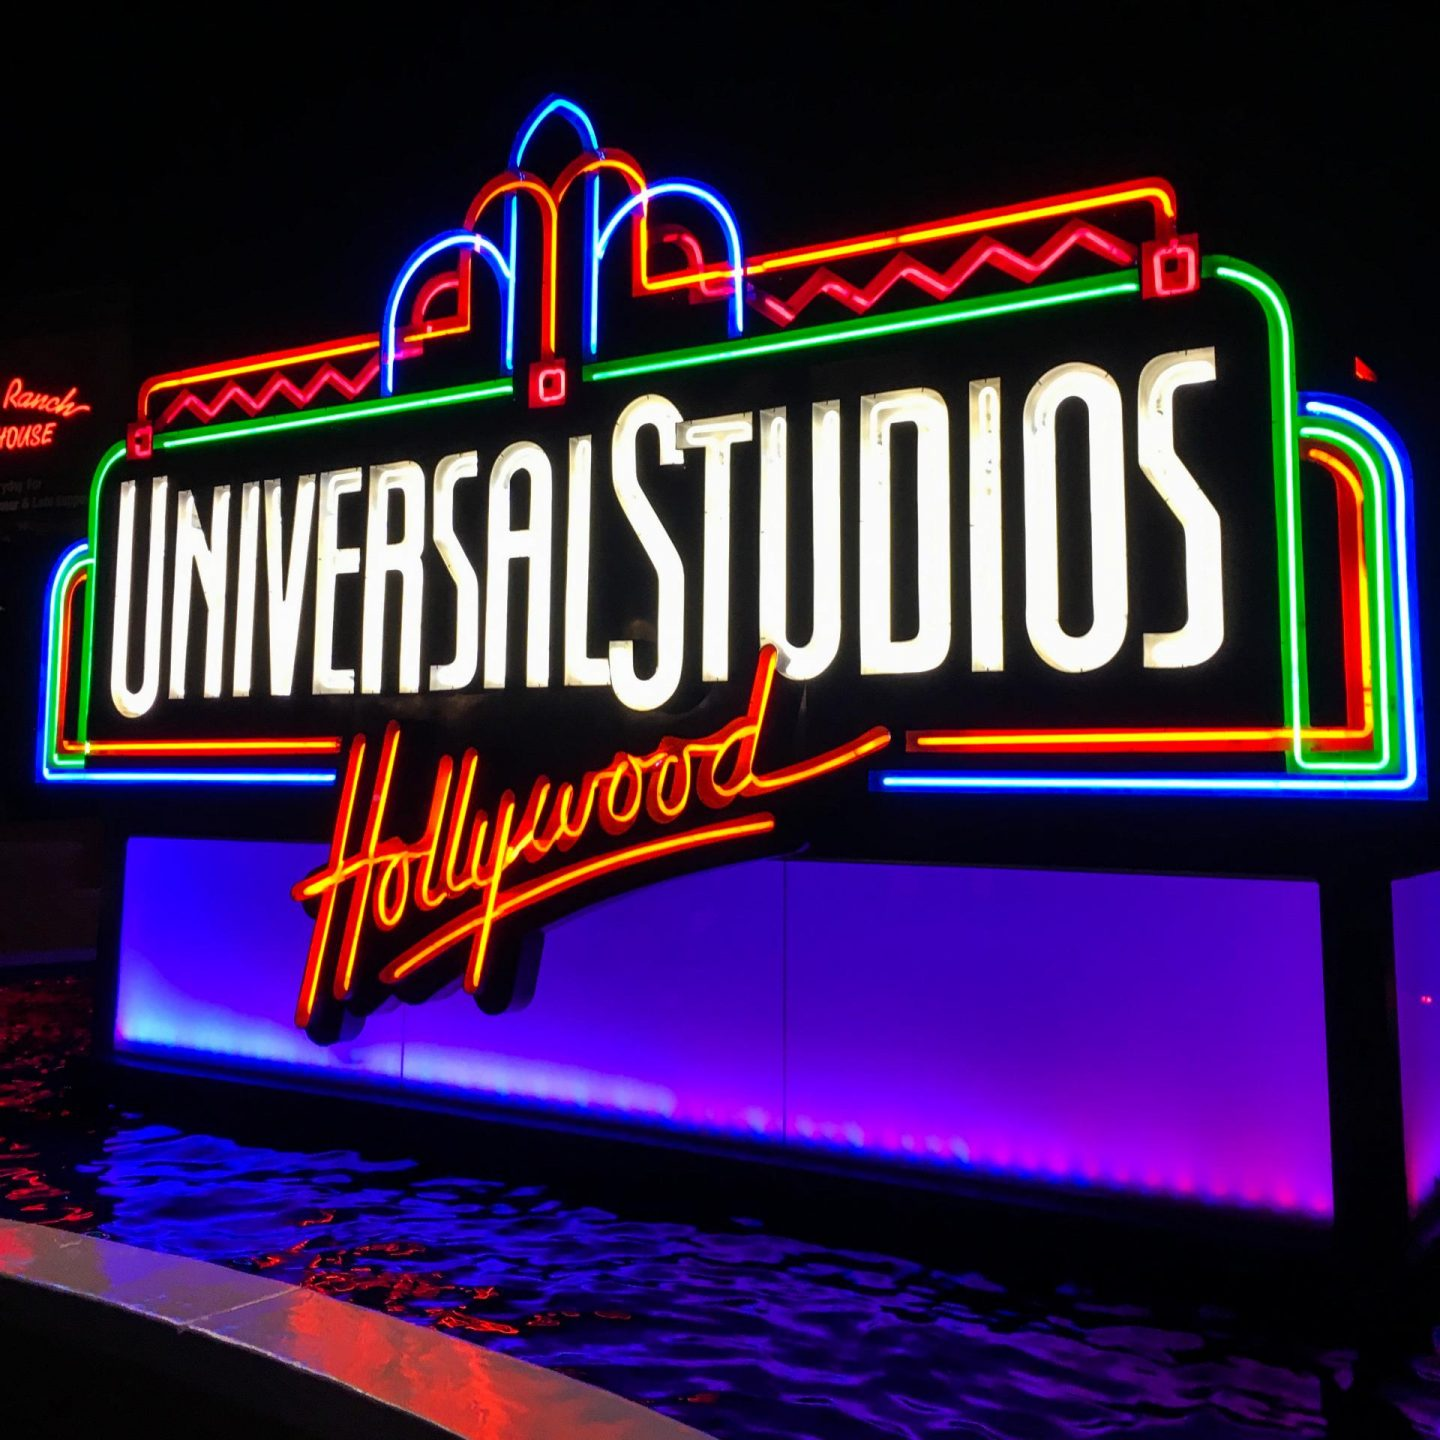 A Solo Trip to Universal Studios, Hollywood with Attractiontix - Rachel Nicole UK Blogger